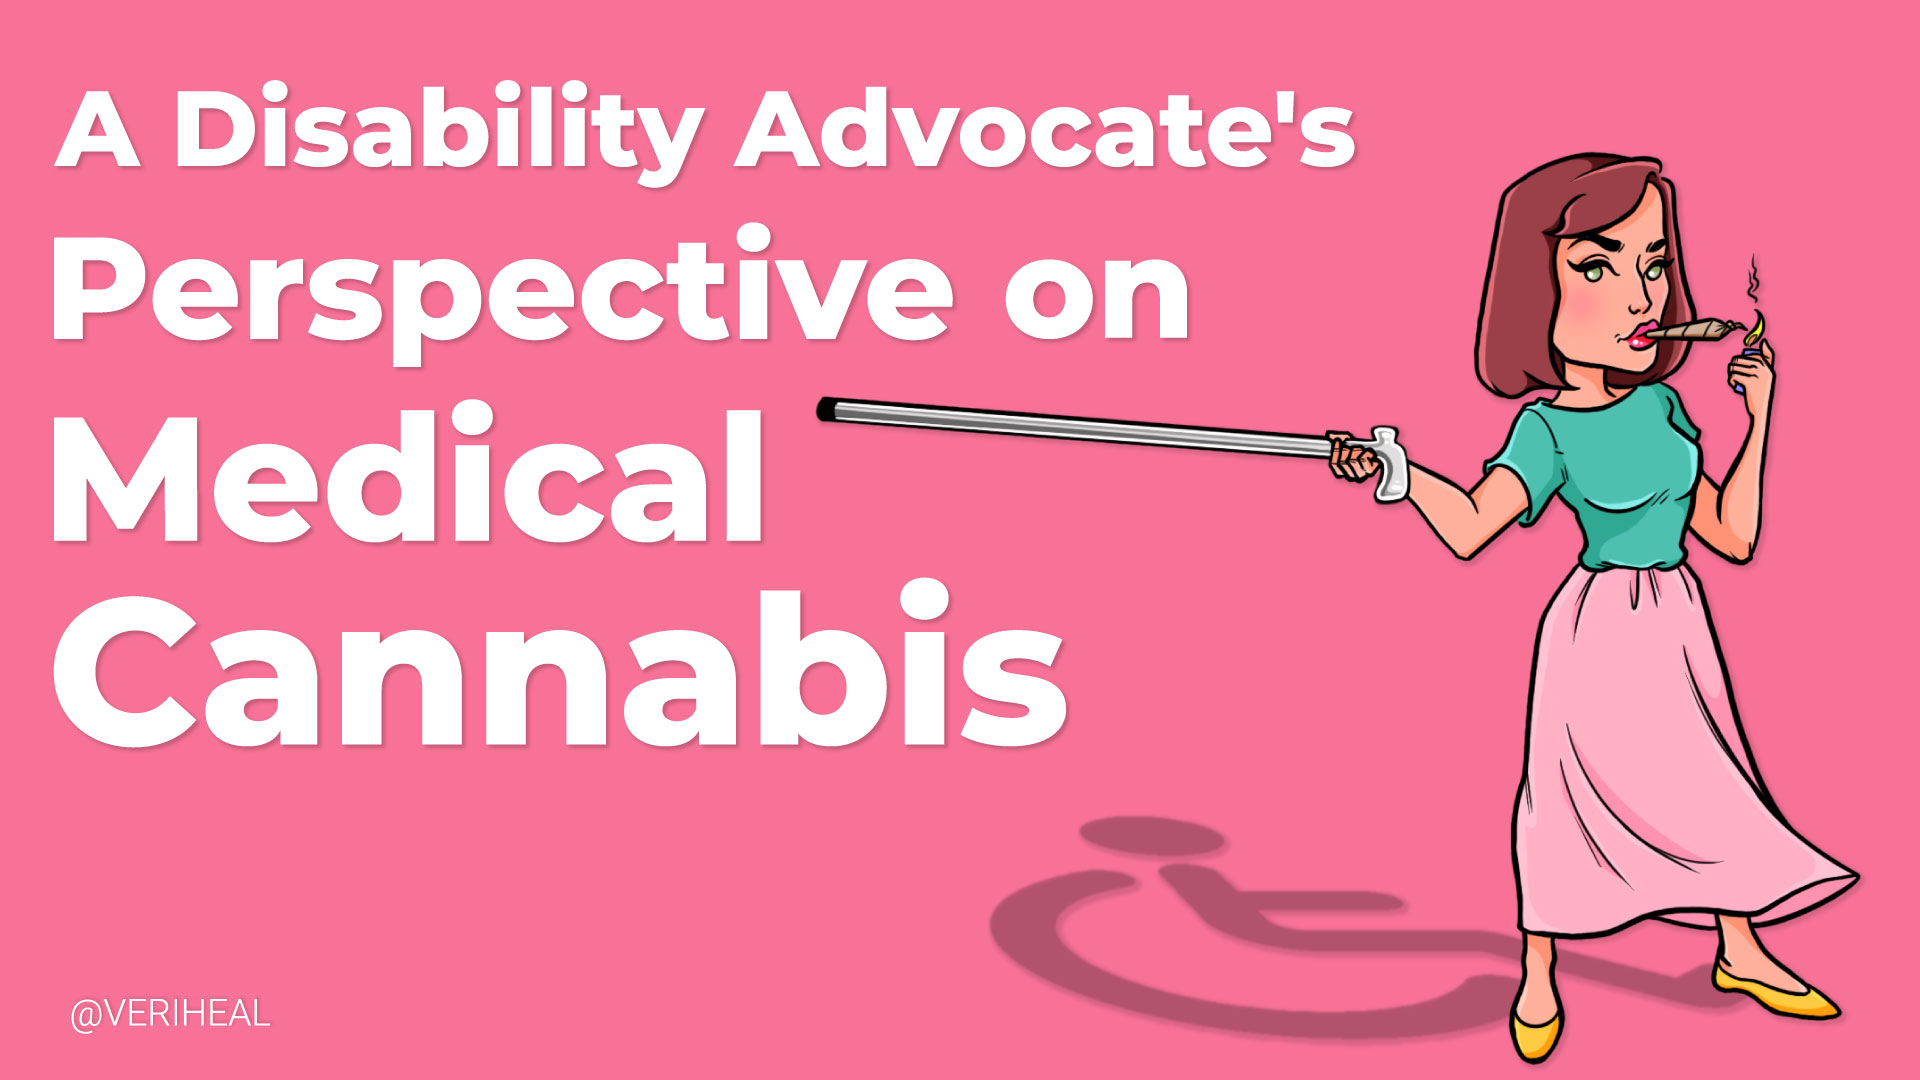 A Disability Advocate's Perspective on Medical Cannabis